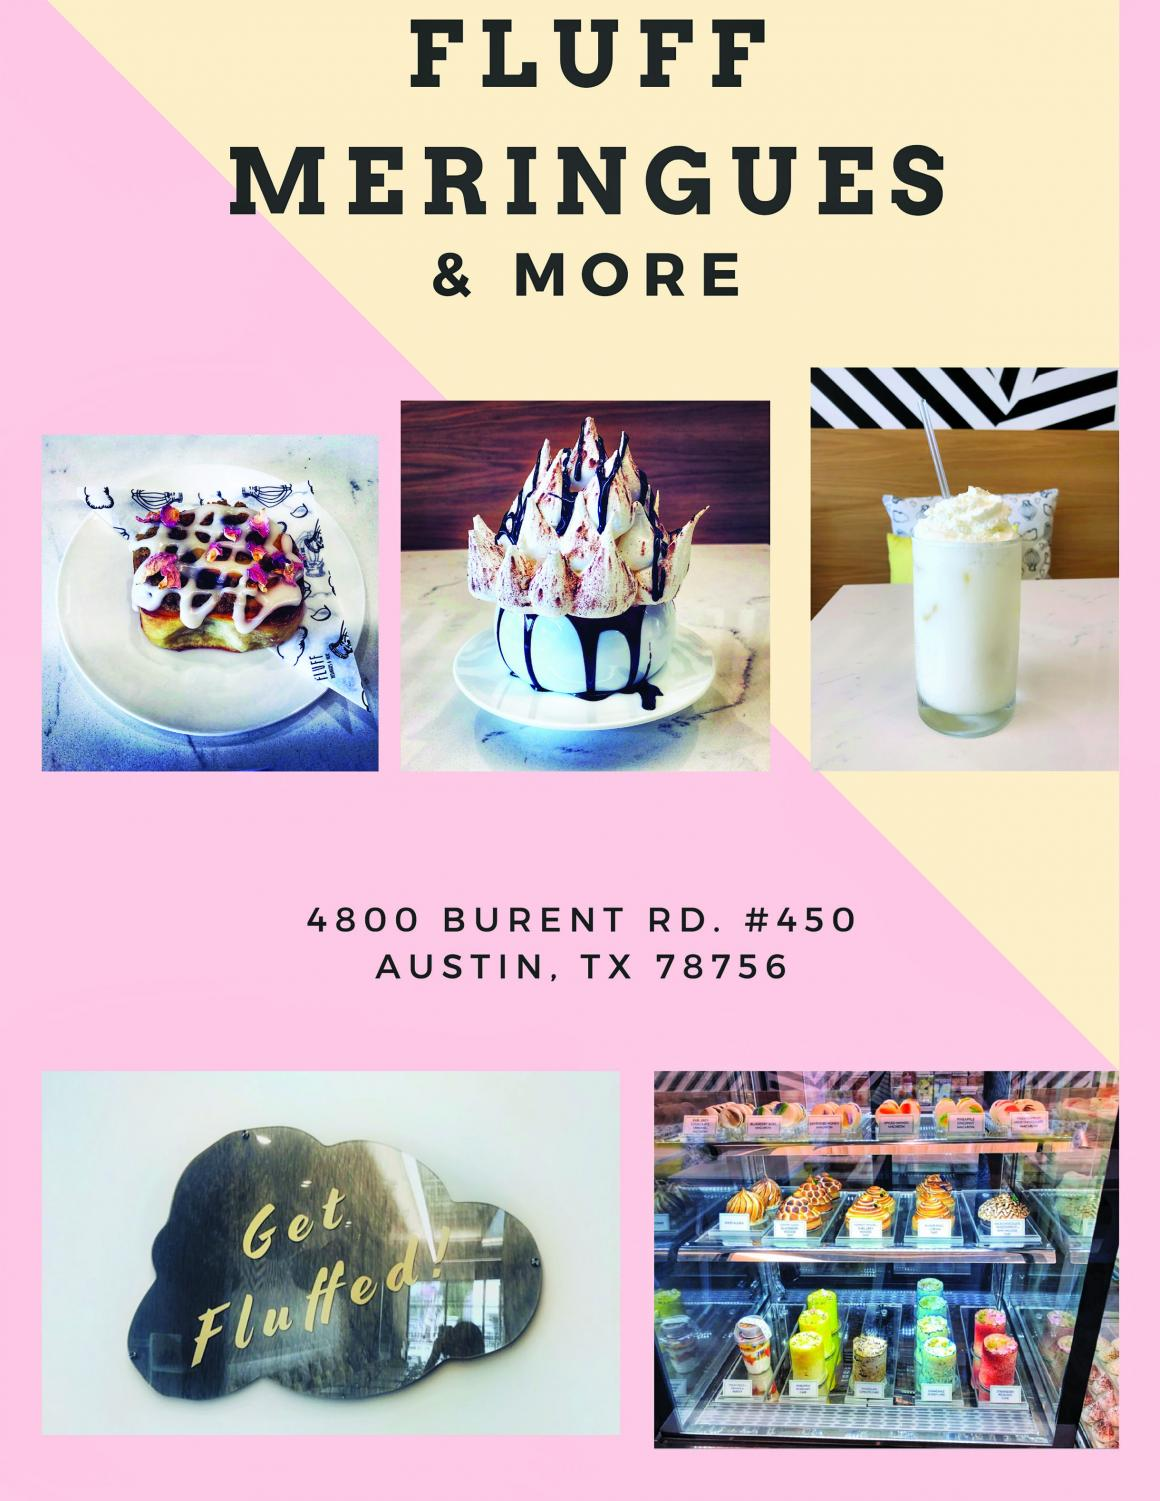 Pictured above are some of the many treats and desserts offered by Fluff Meringues & More. While the company has been around since 2015, they opened a brick and mortar store in Sept. 2018.